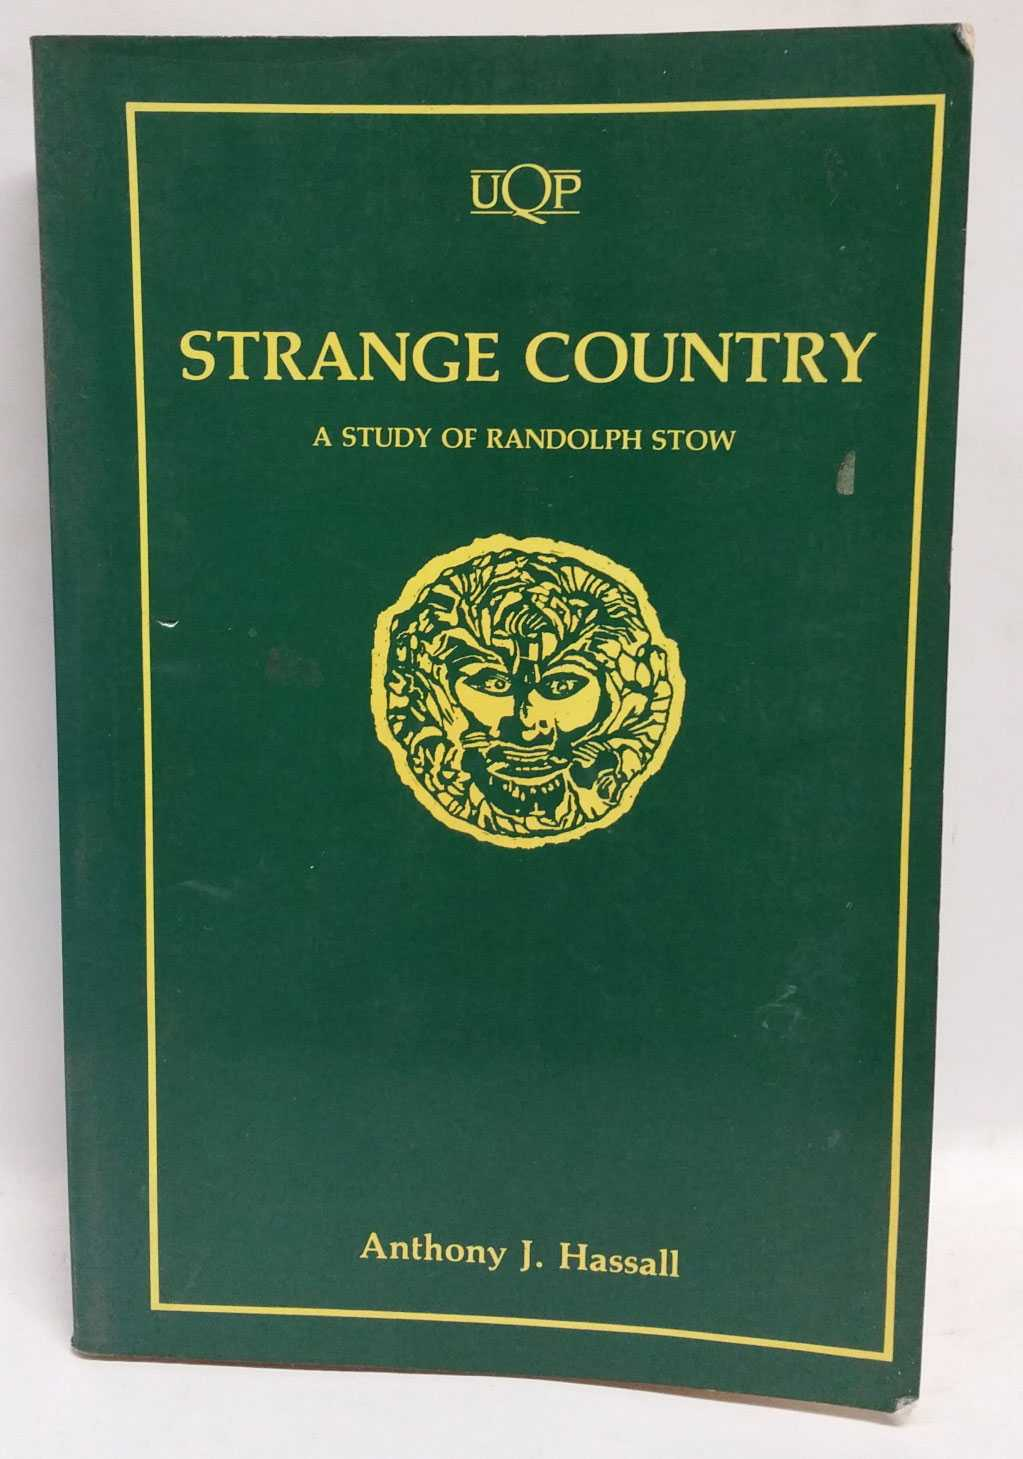 Strange Country: A Study of Randolph Stow, Anthony J. Hassall